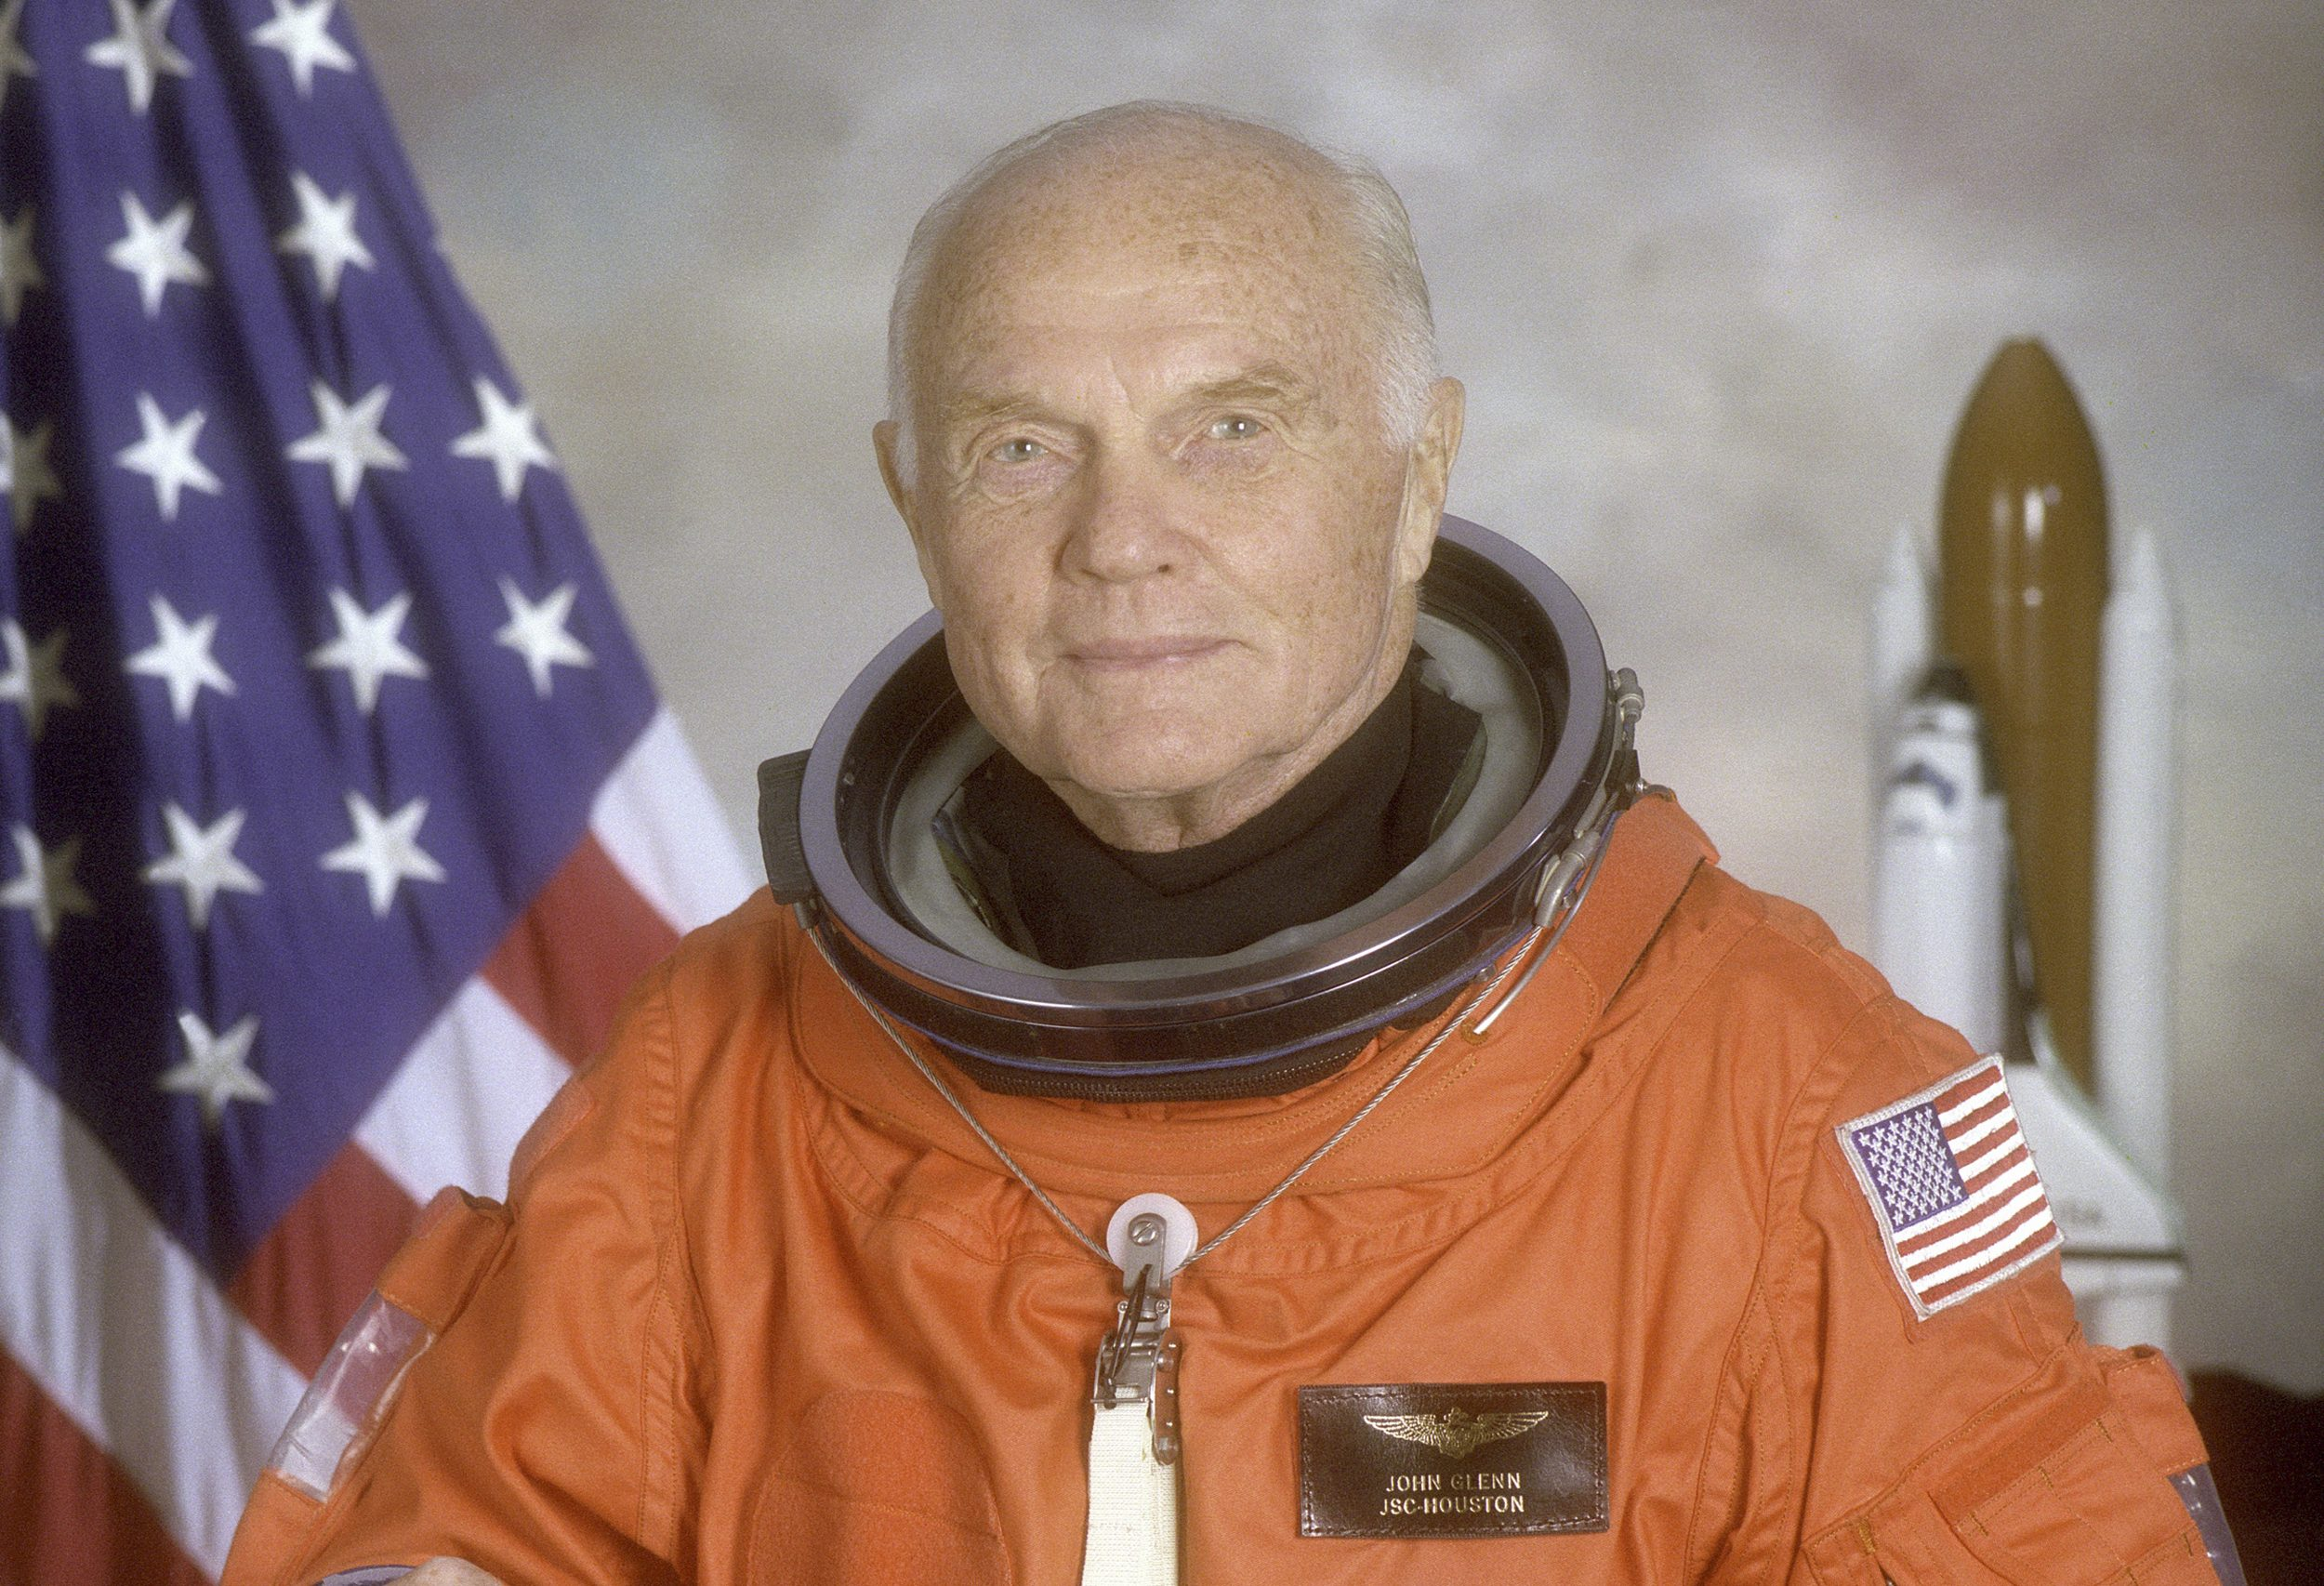 FILE PHOTO - STS-95 crewmember, astronaut and U.S. Senator John Glenn poses for his official NASA photo taken April 14,1998. Courtesy NASA/Handout via REUTERS